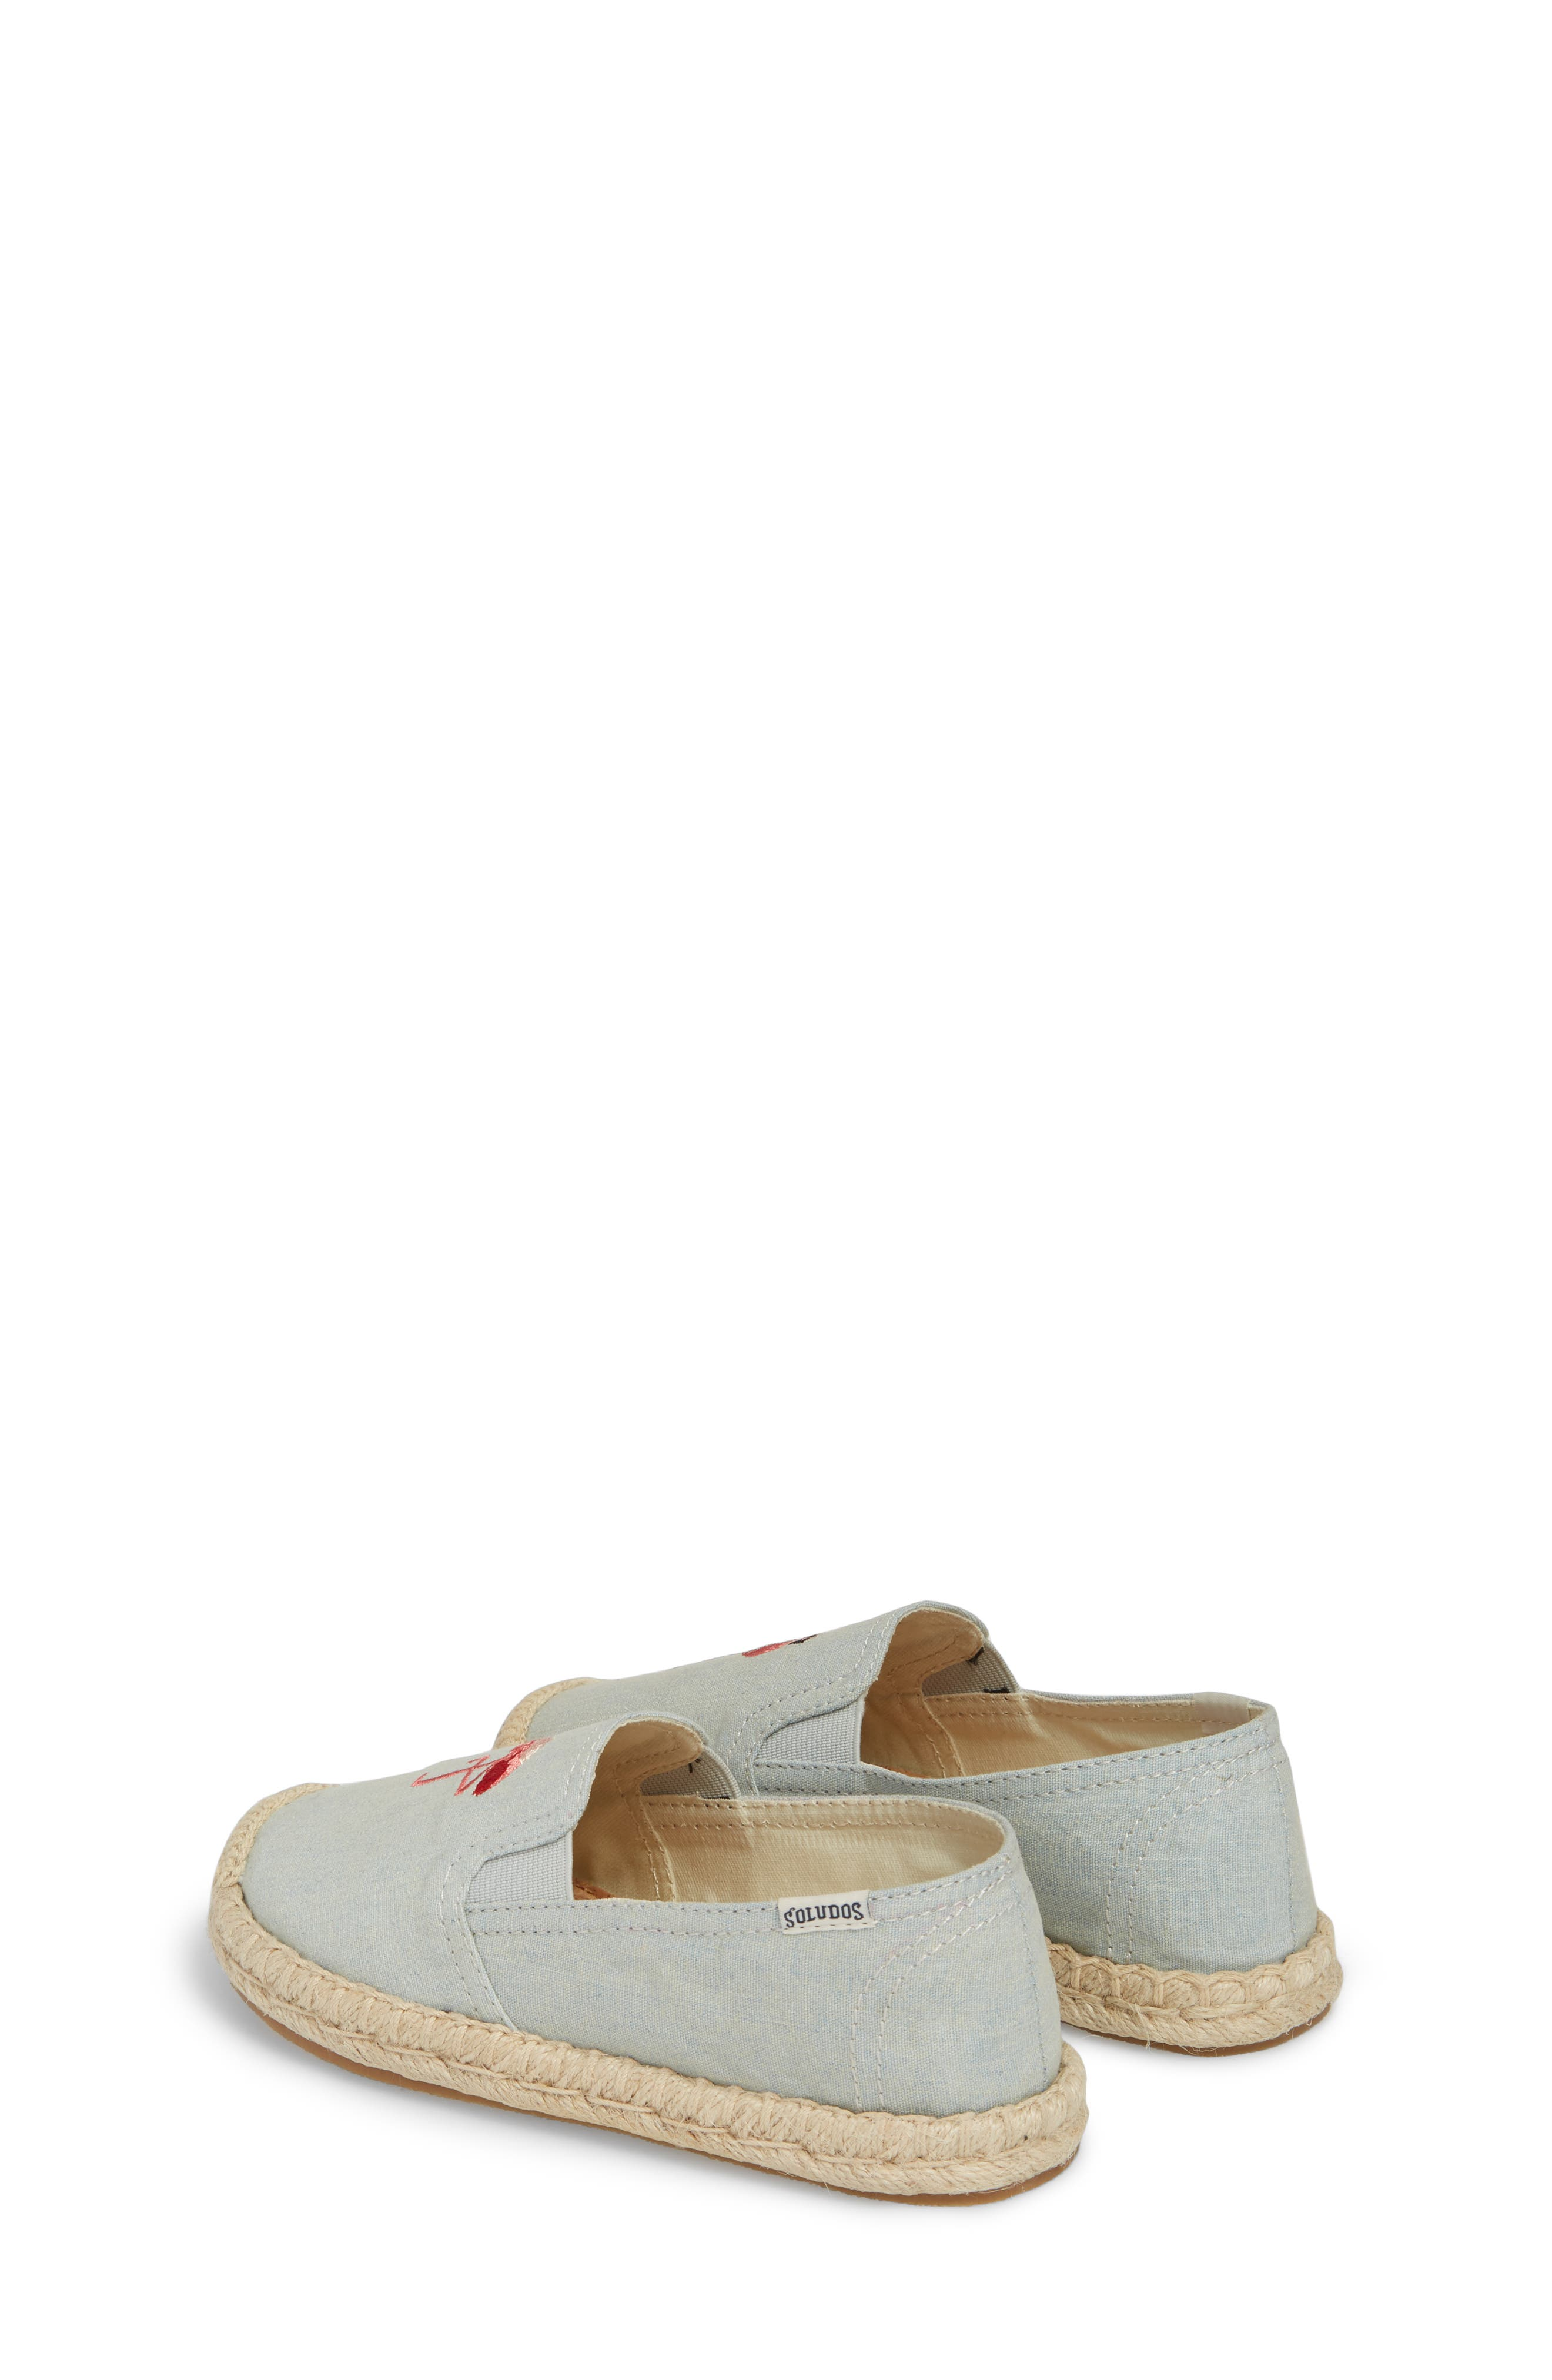 SOLUDOS, Flamingo Embroidered Espadrille, Alternate thumbnail 3, color, CHAMBRAY